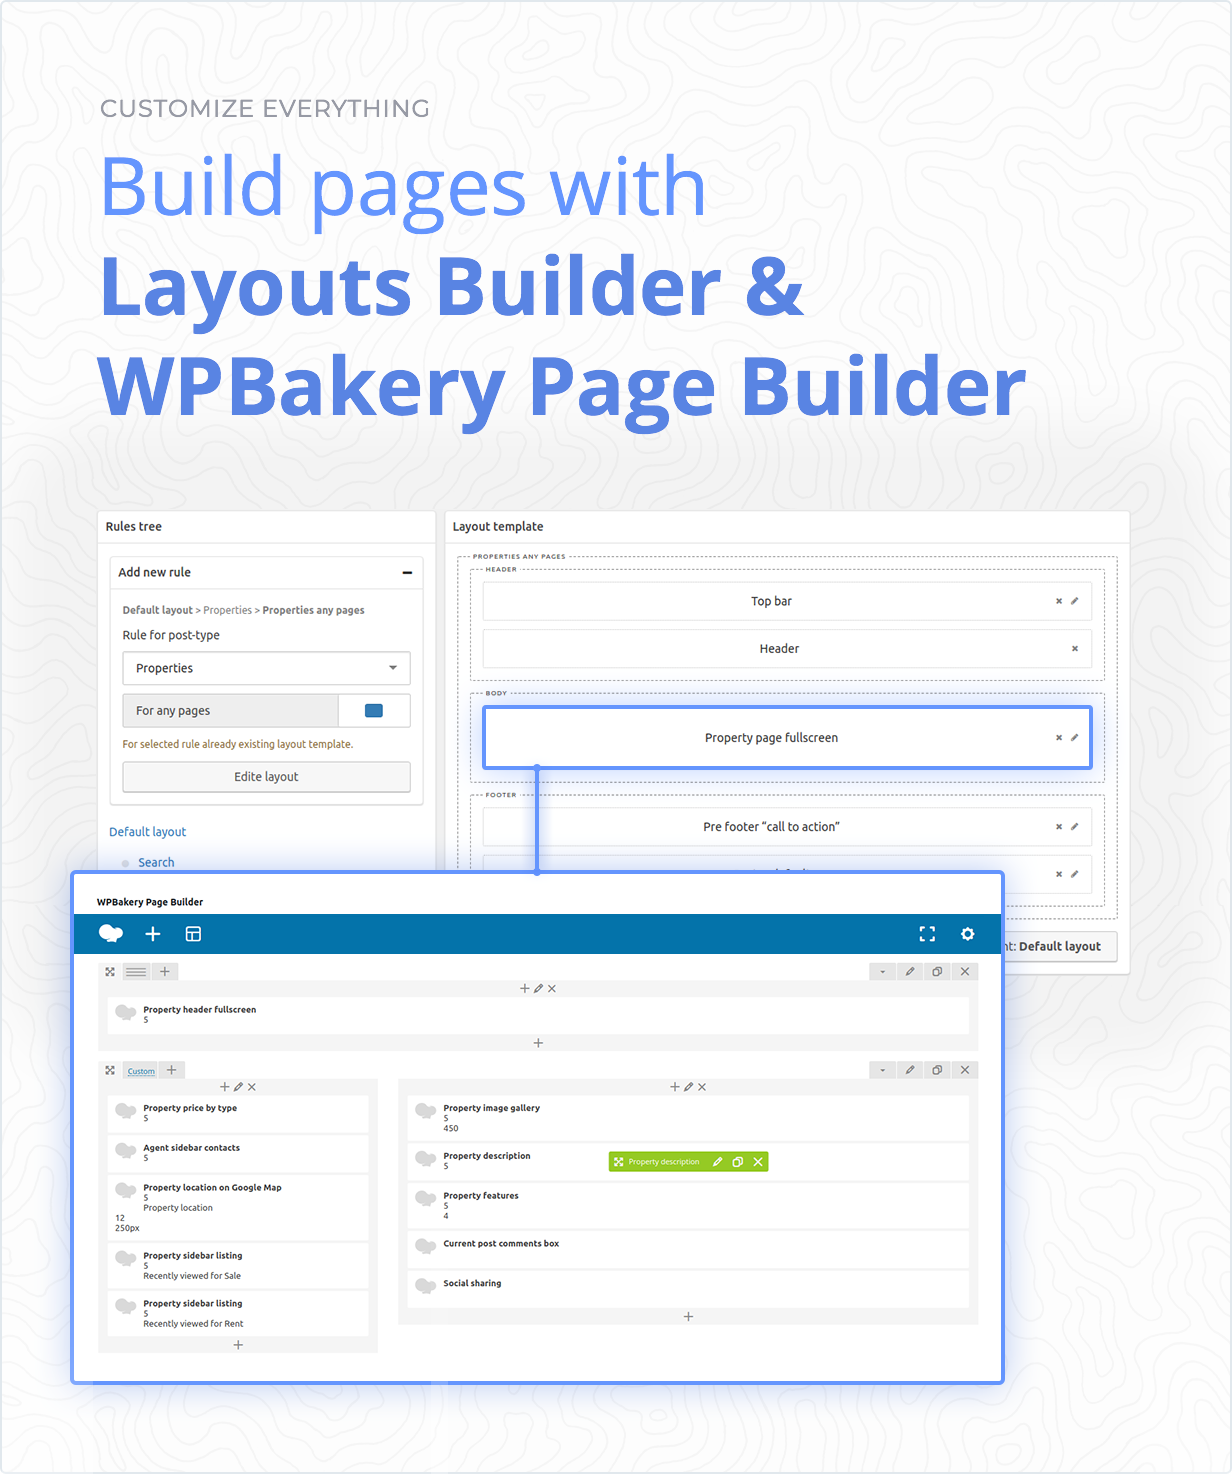 Build pages with Layouts Builder & WPbakery Page Builder with +60 unique addons